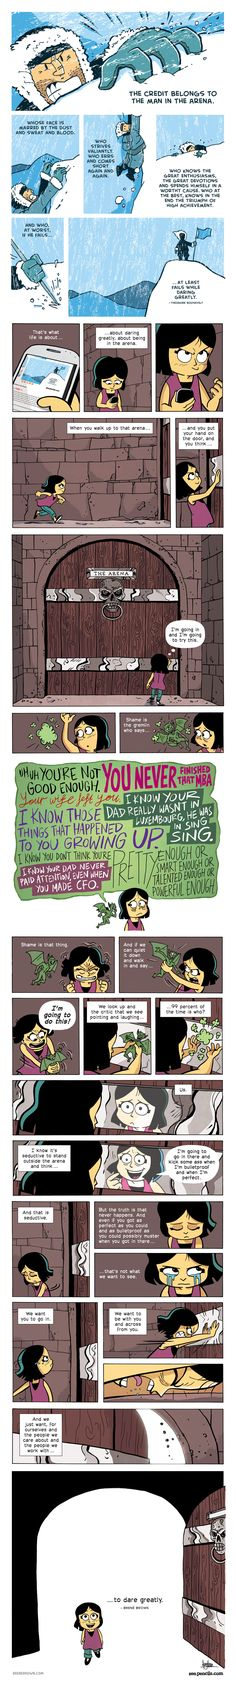 Gavin Aung Than is a cartoonist based in Melbourne, Australia and creator of Zen Pencils, a cartoon blog which adapts inspirational quotes into comic stories.   Brene Brown